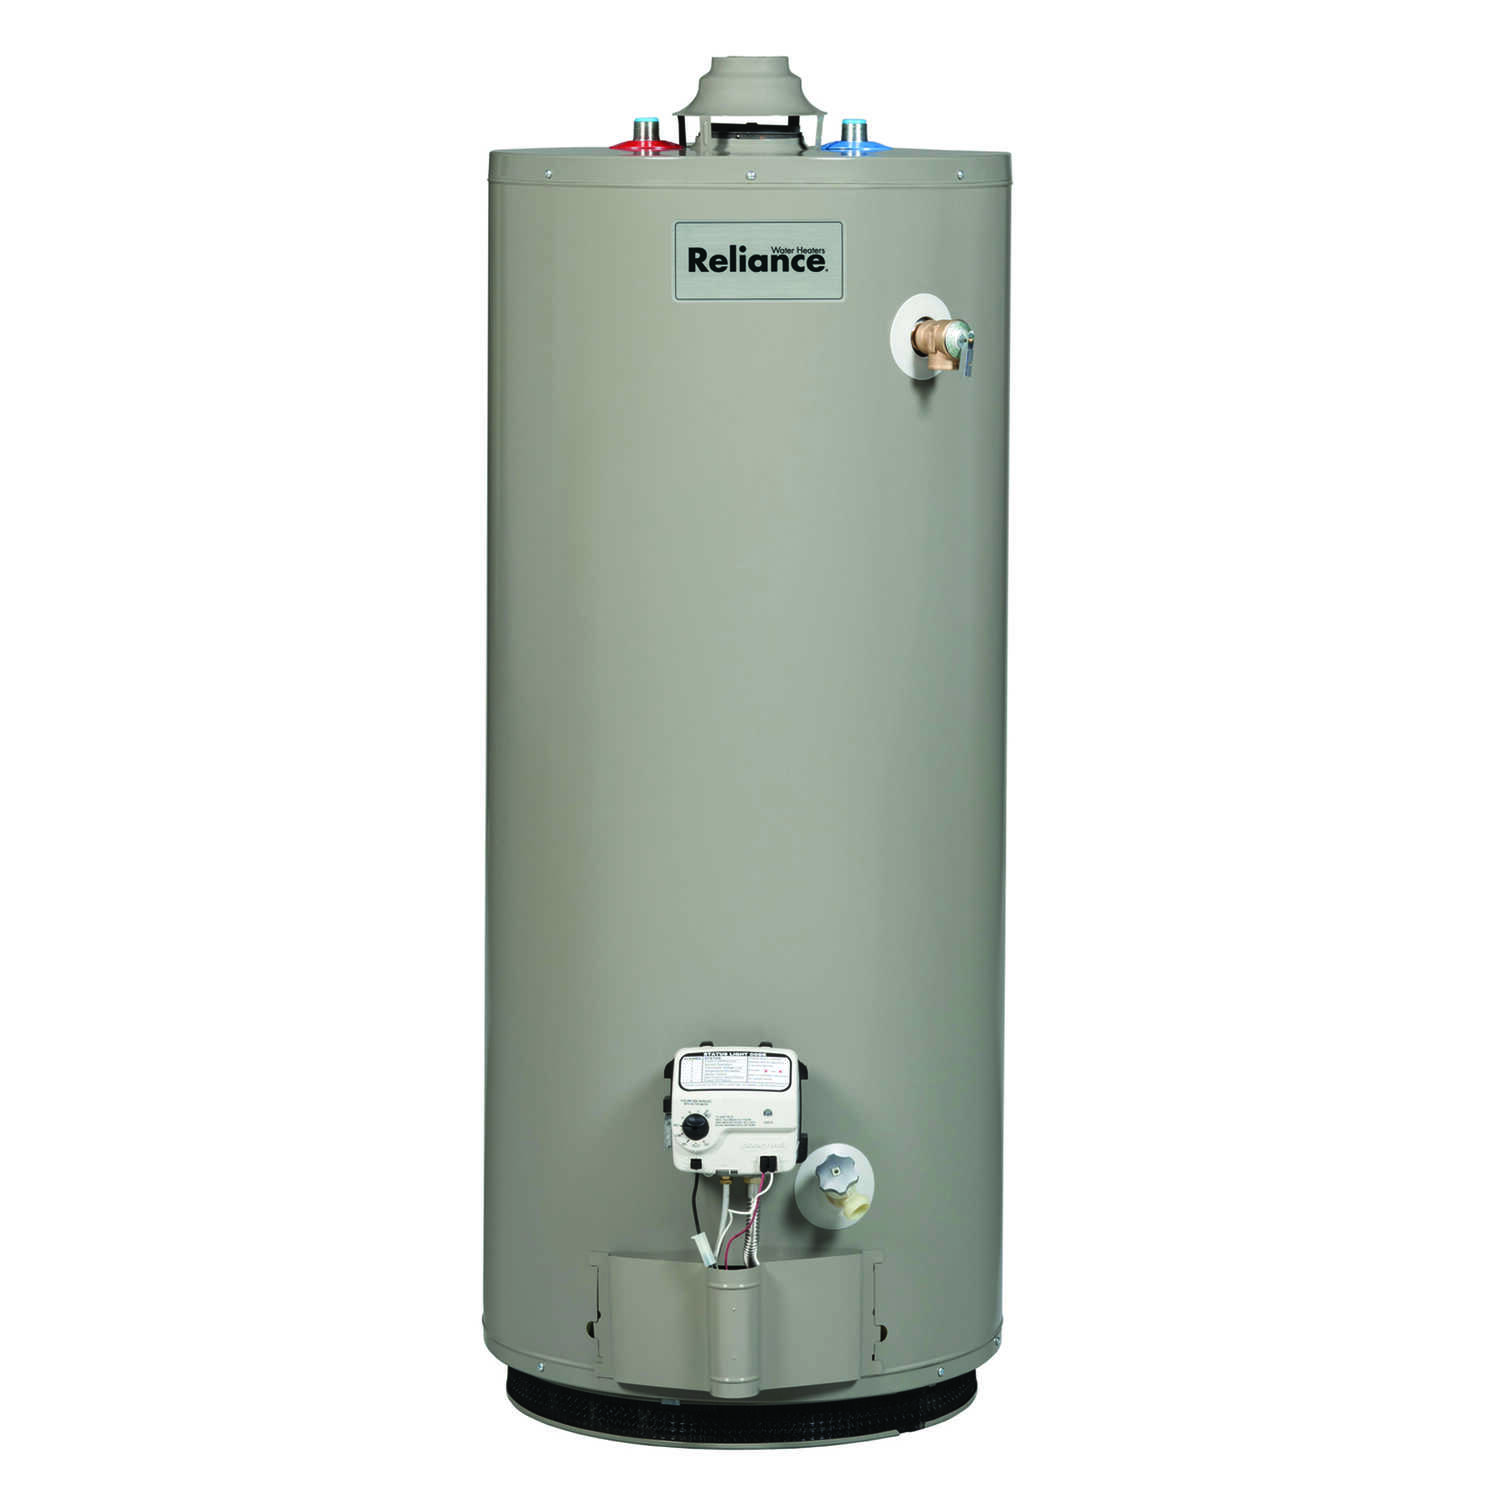 Reliance  Propane  Water Heater  62 in. H x 20 in. W x 20 in. L 40 gal.